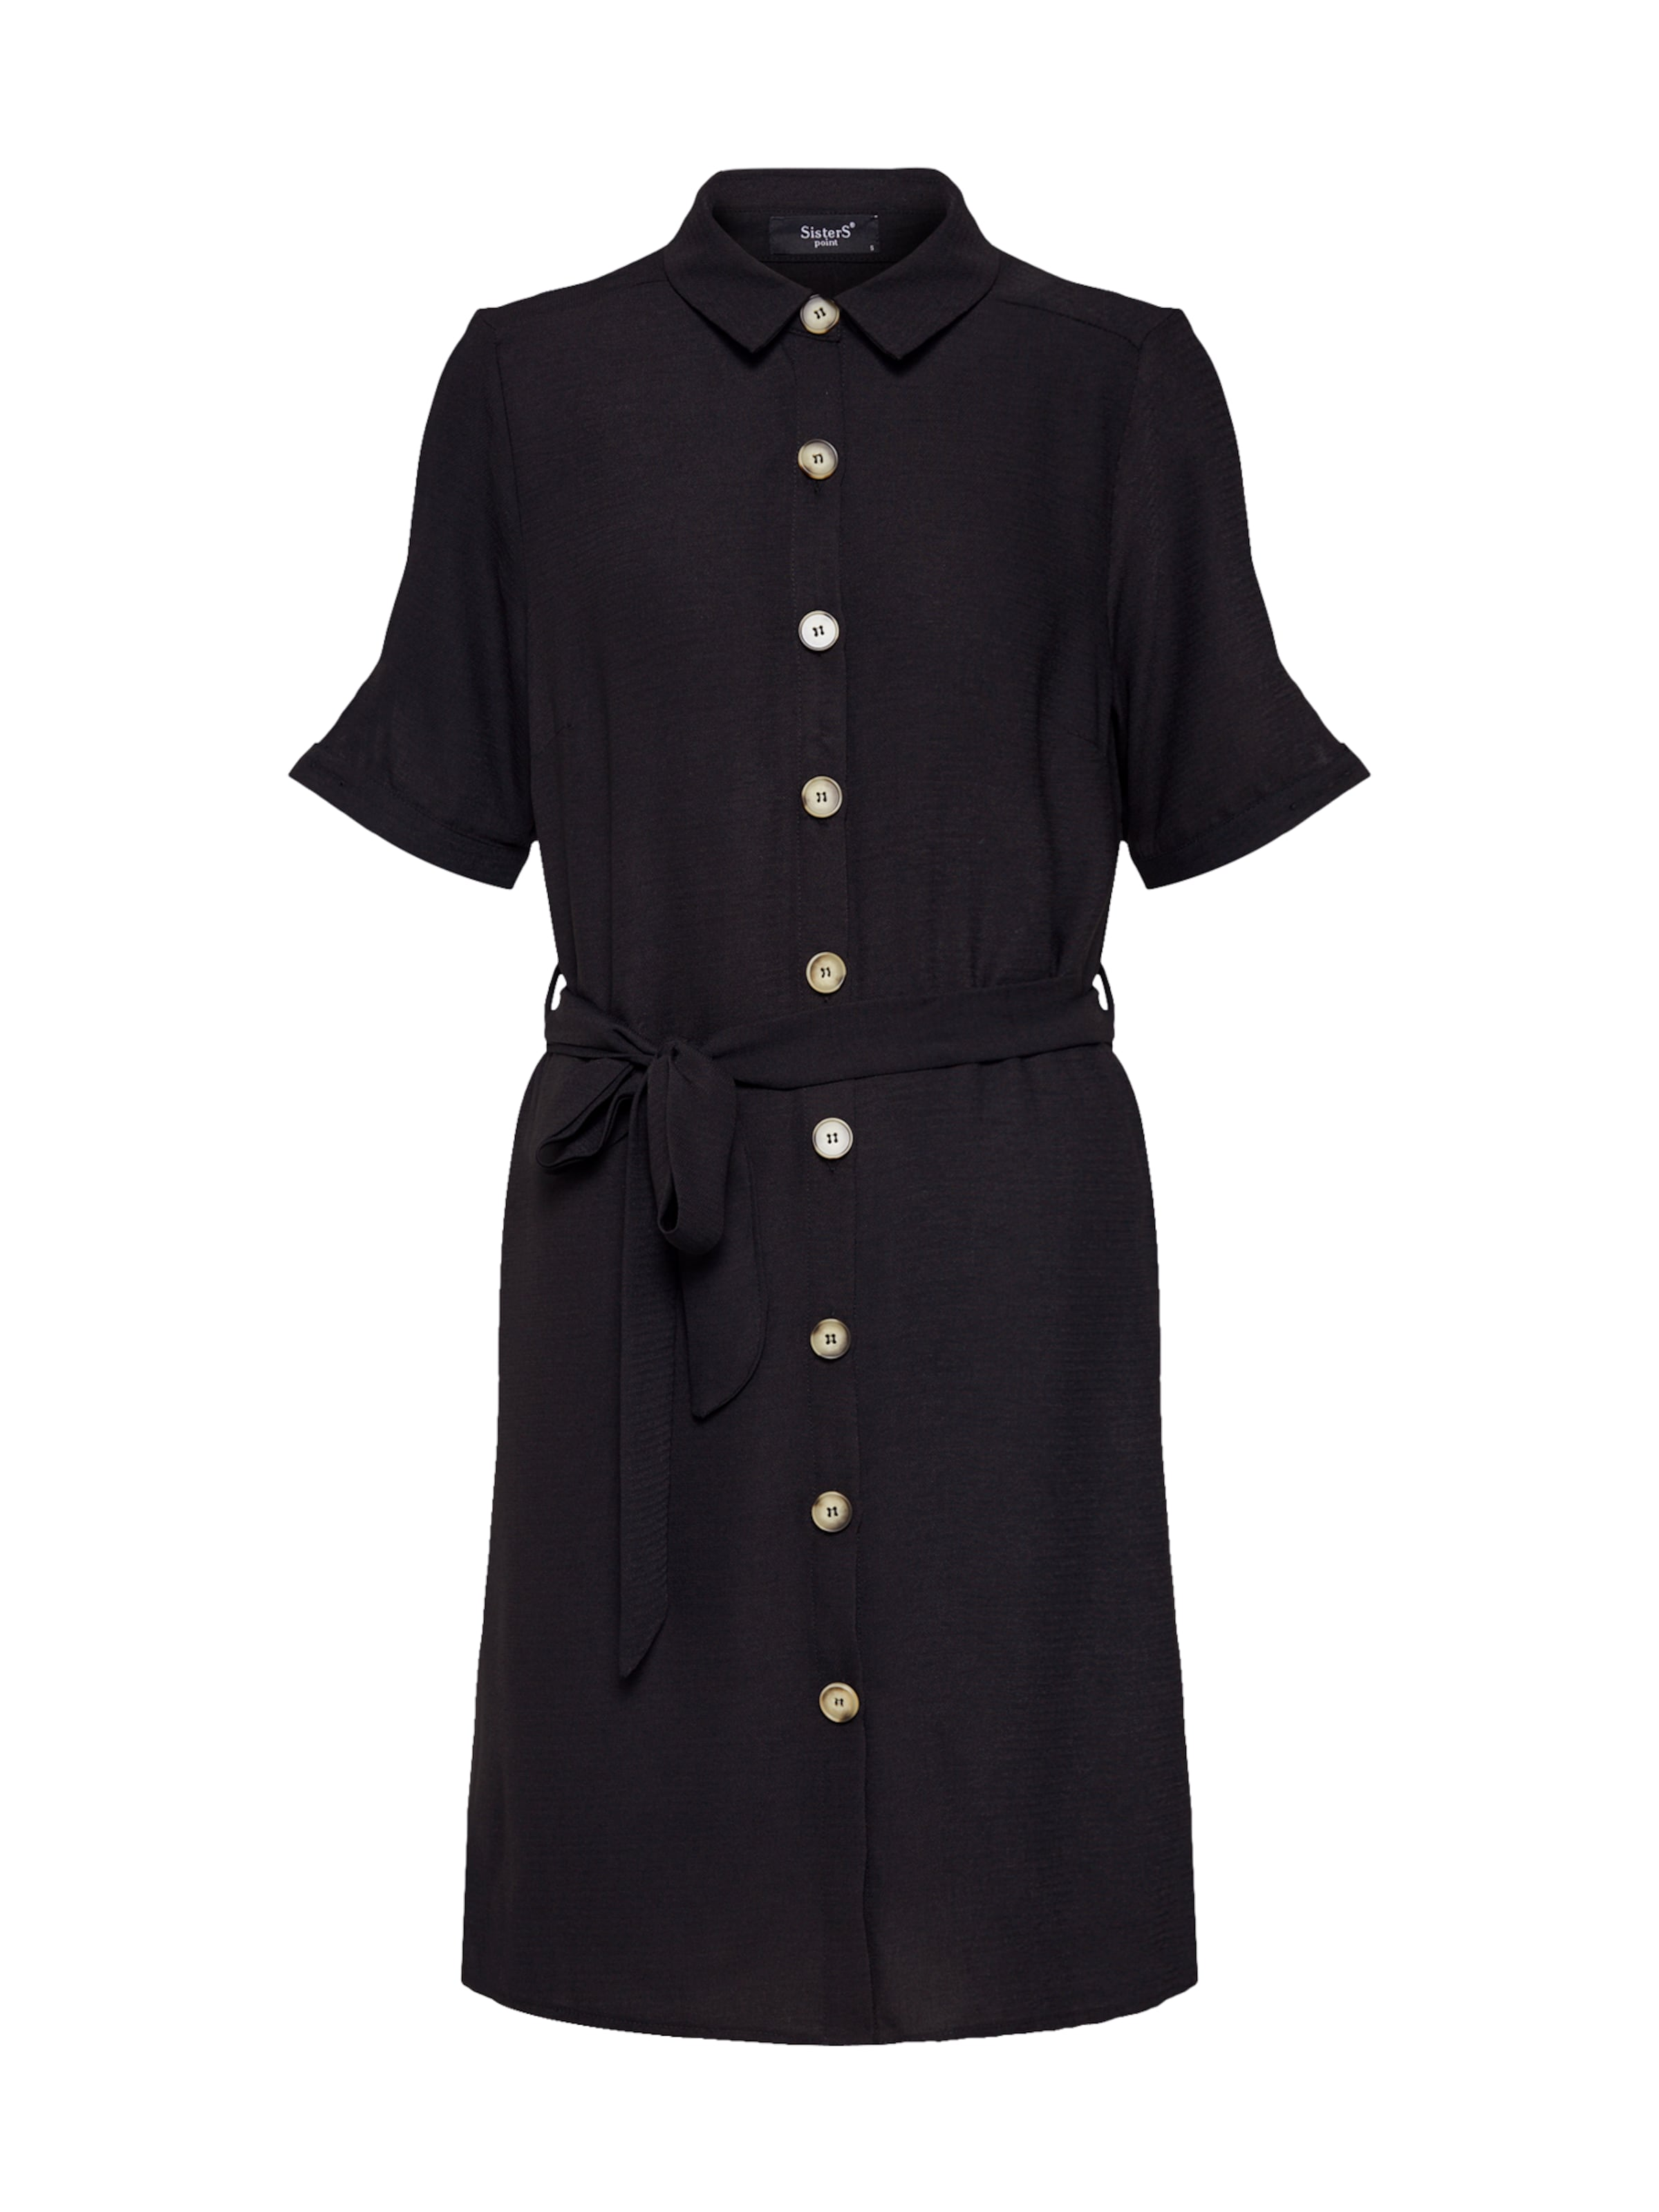 Robe chemise Sisters Noir ss Point 'erob En a' gymIbf76vY